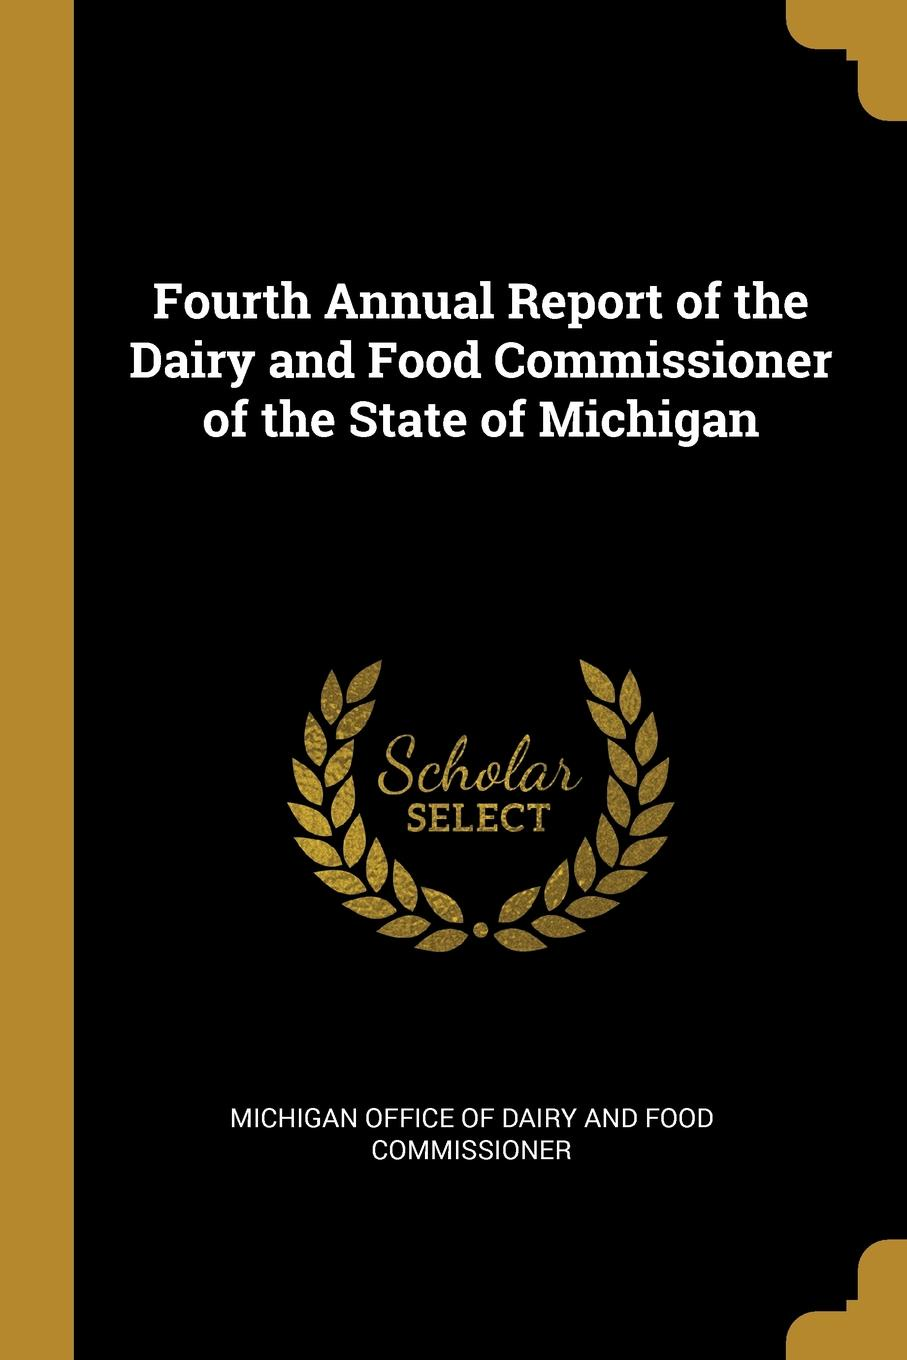 M Office of Dairy and Food Commissioner Fourth Annual Report of the Dairy and Food Commissioner of the State of Michigan